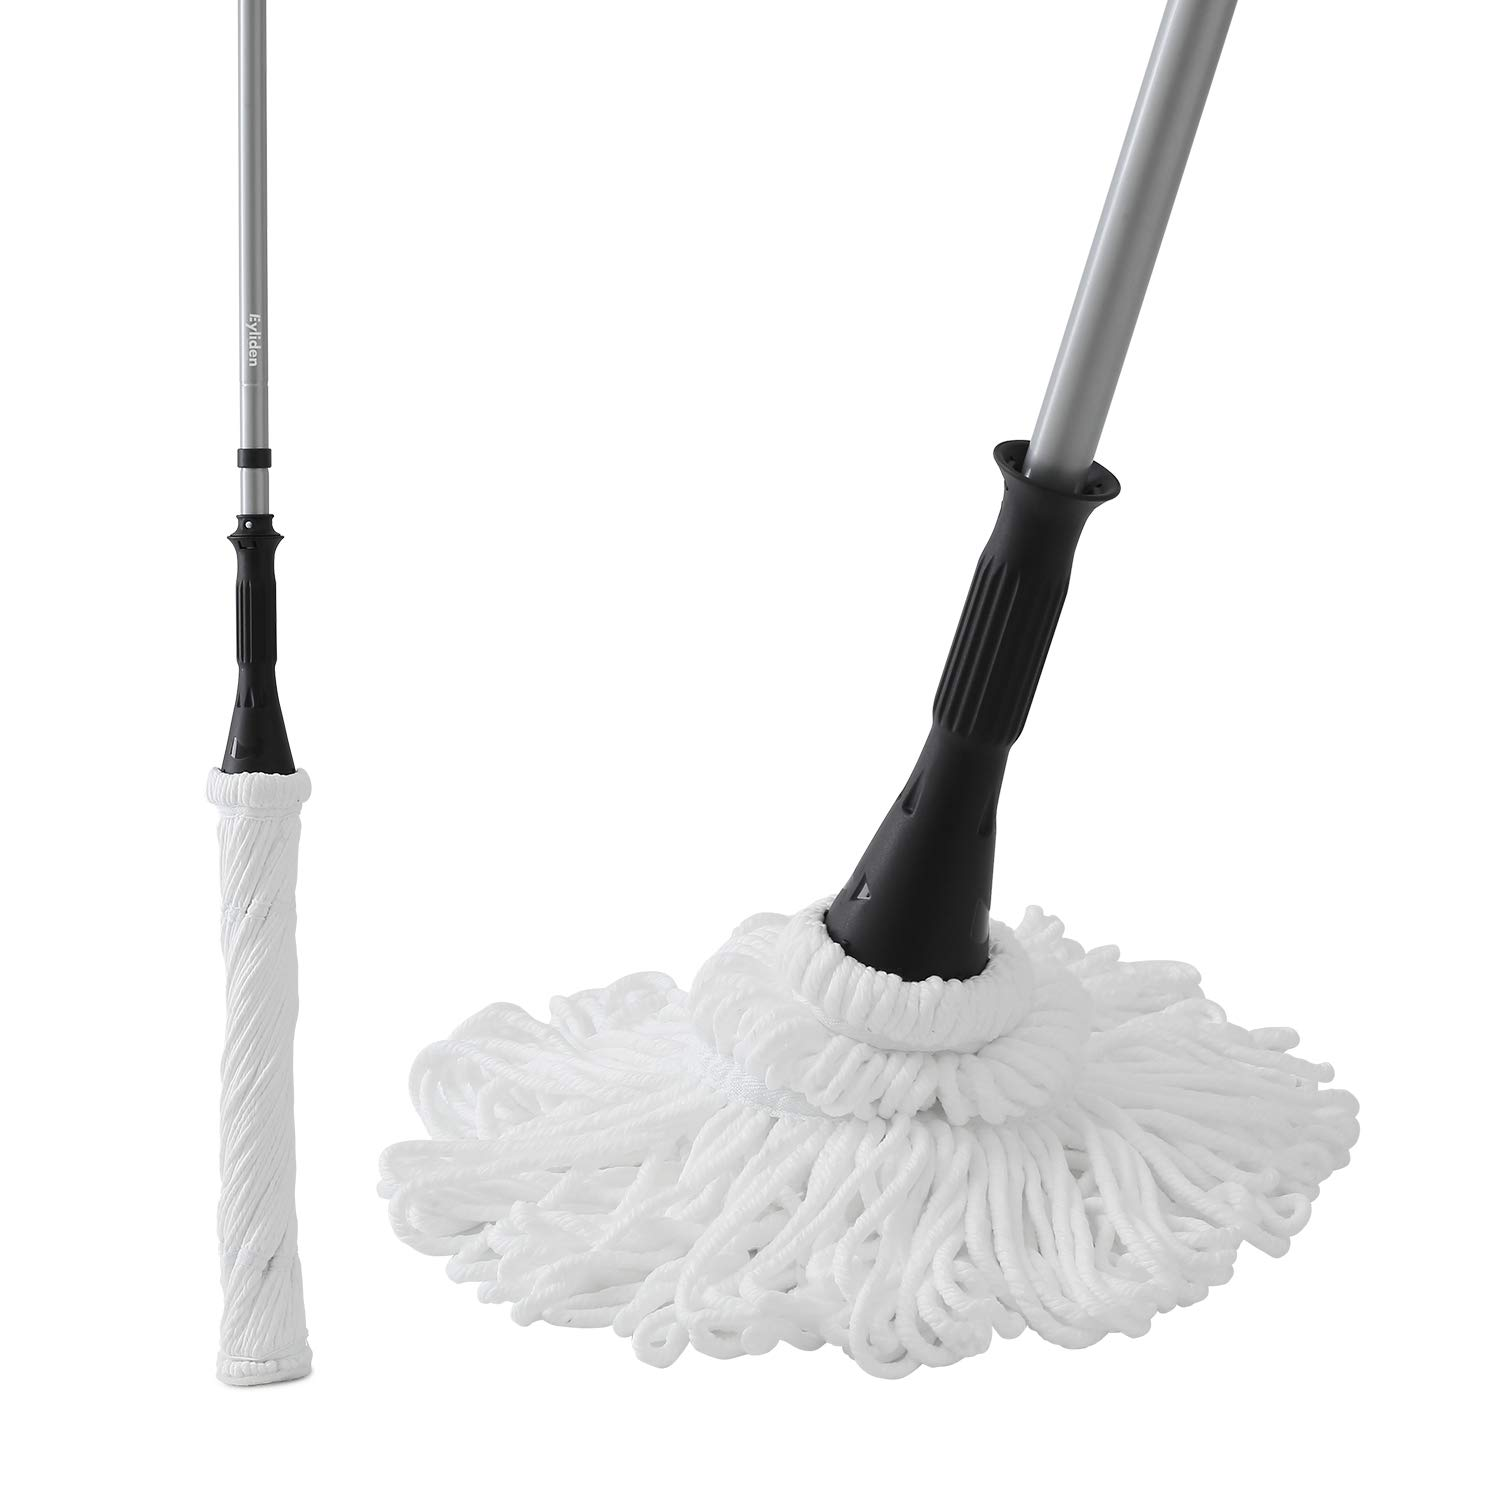 Ey.liden Microfiber Twist Mop Easy Self Wringing Mop with 2 Microfiber Heads for all Sort of Floors Wooden Floor Tiles Matte Finish Floor Tiles by Ey.liden